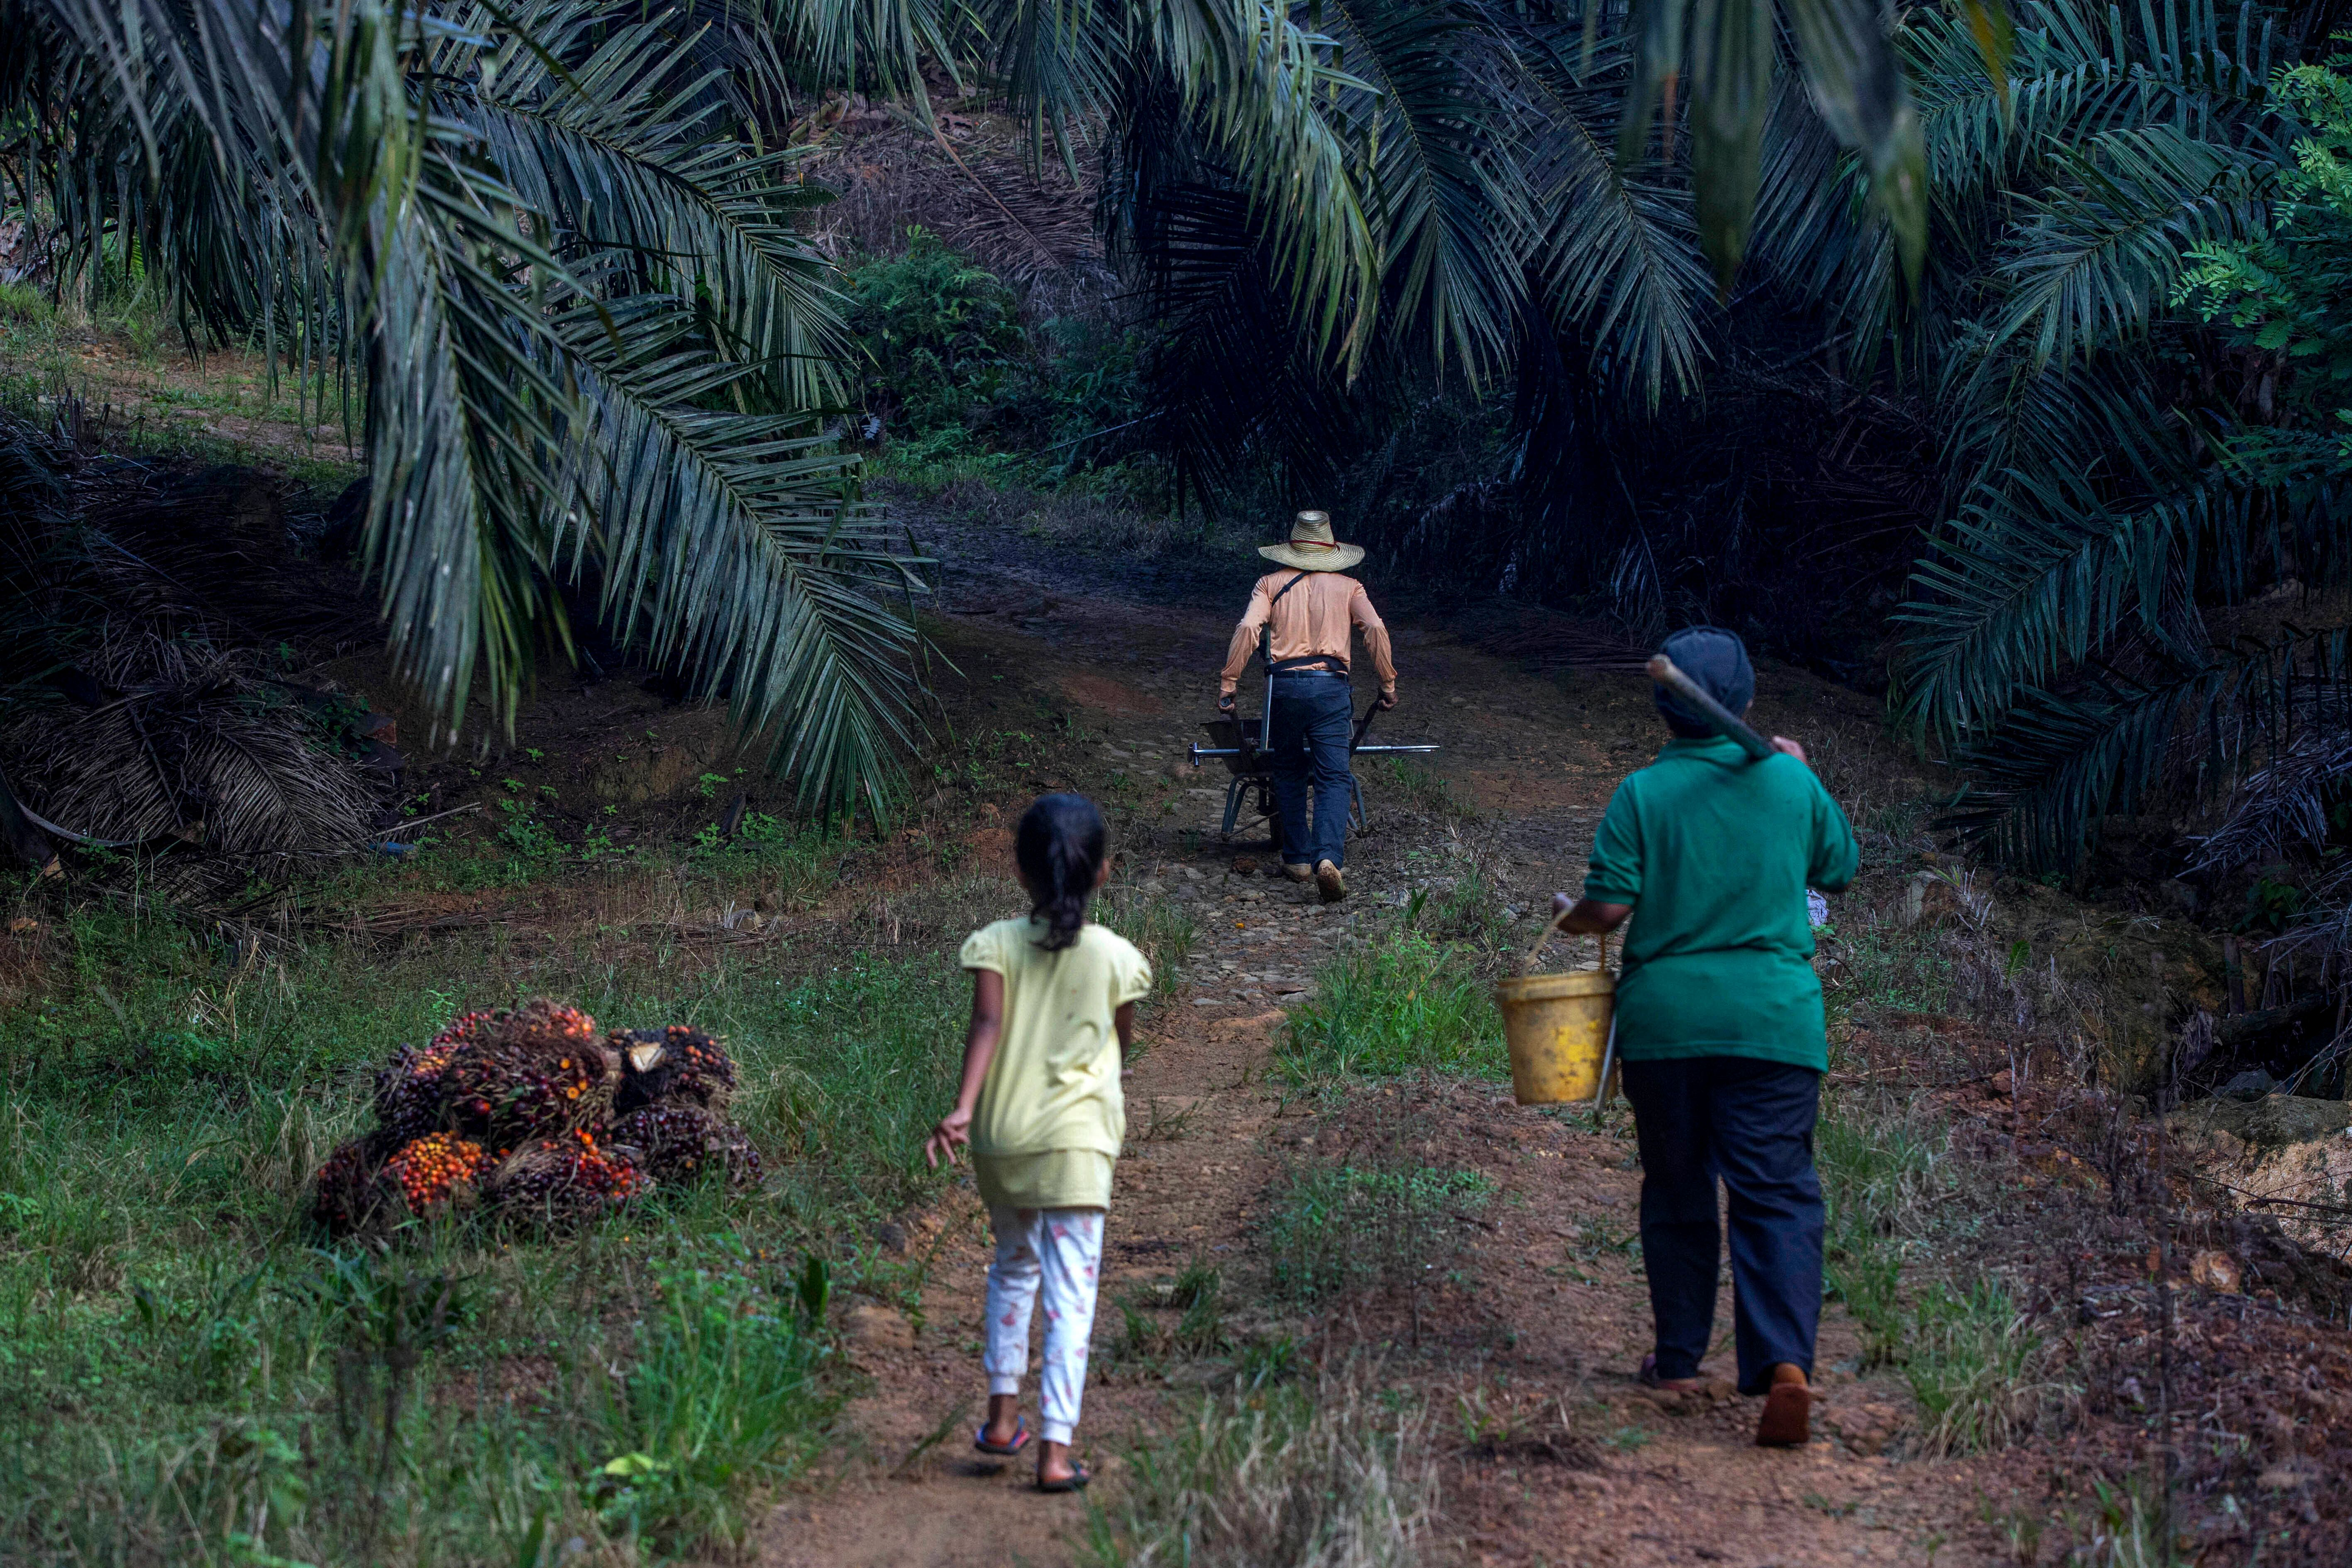 A little girl helps her parents work on a palm oil plantation in Sabah, Malaysia. Many children gather loose kernels and clea